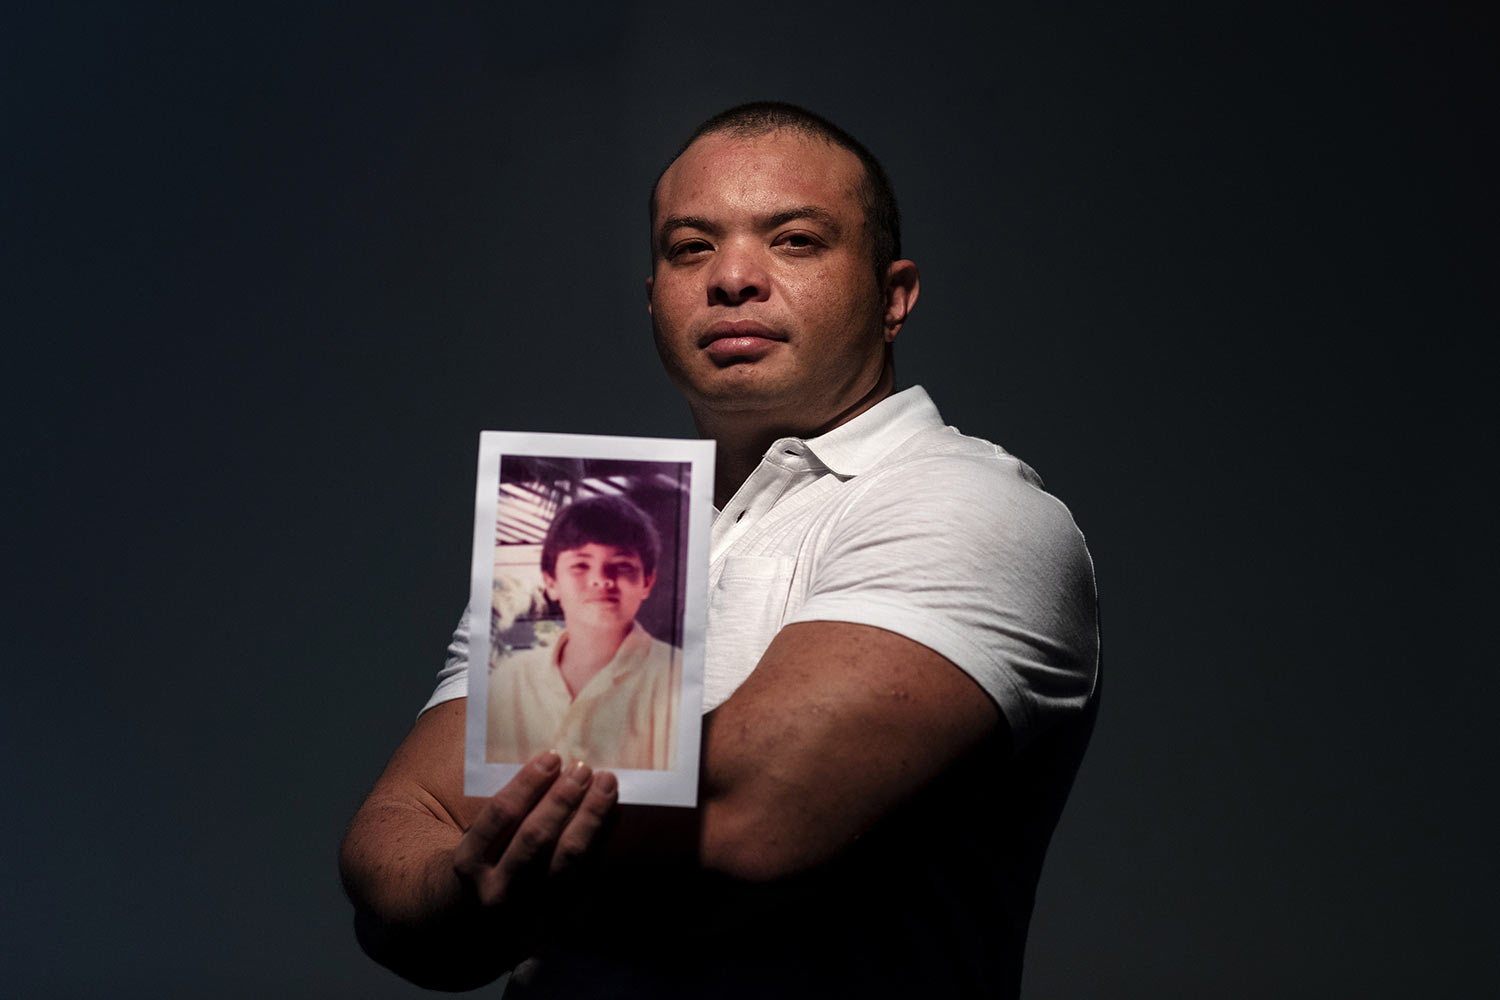 Troy Torres, 38, holds a photo of himself when he was about 12 years old. (AP Photo/David Goldman)